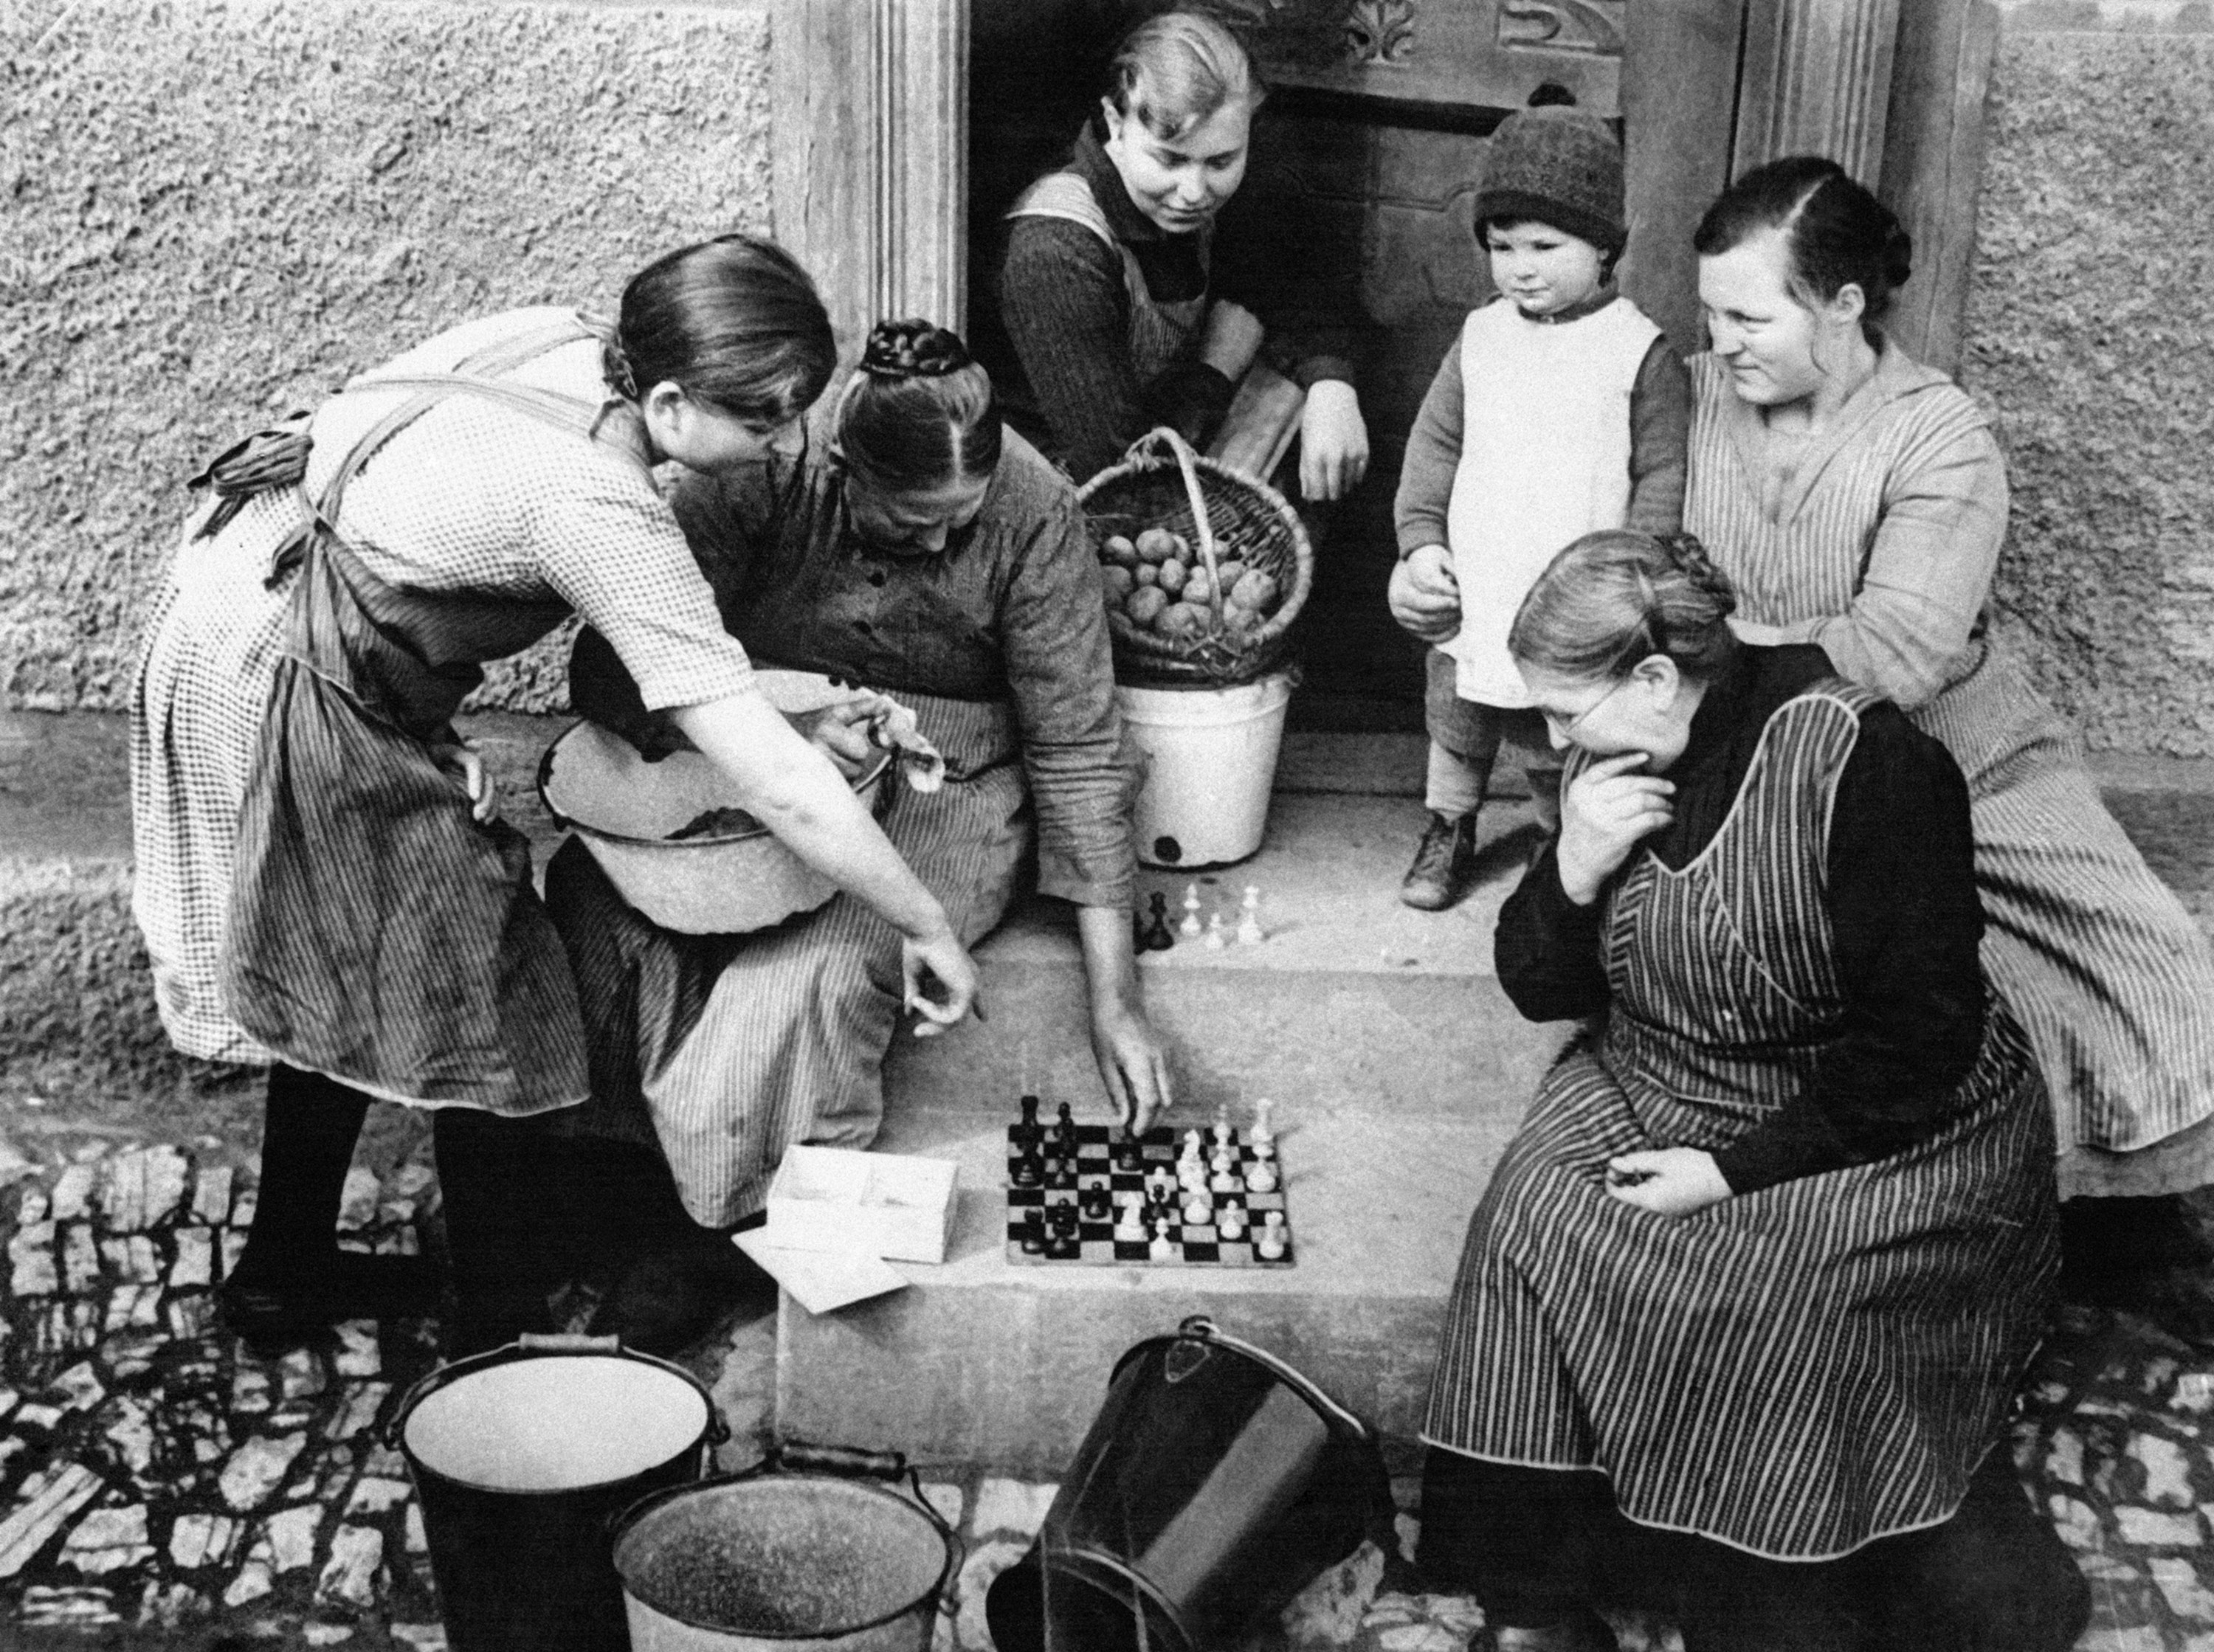 Group of women huddled over a chess board on a stoop